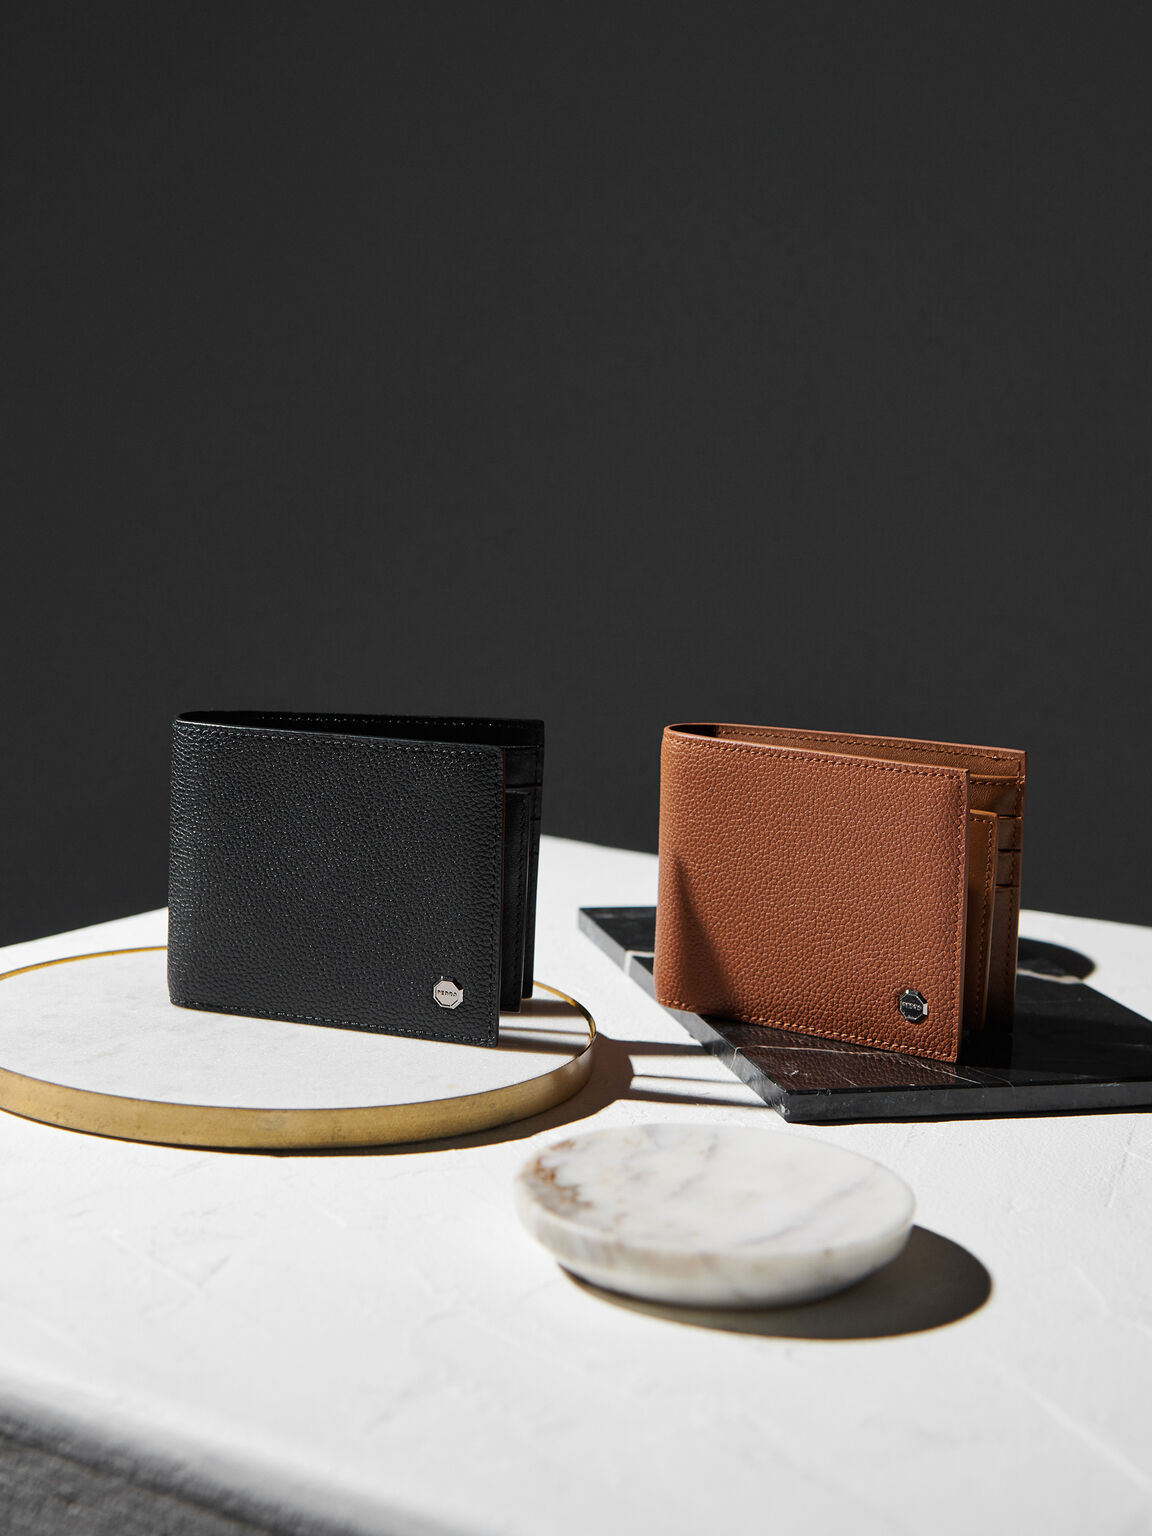 Textured Leather Bi-Fold Wallet with Insert, Cognac, hi-res